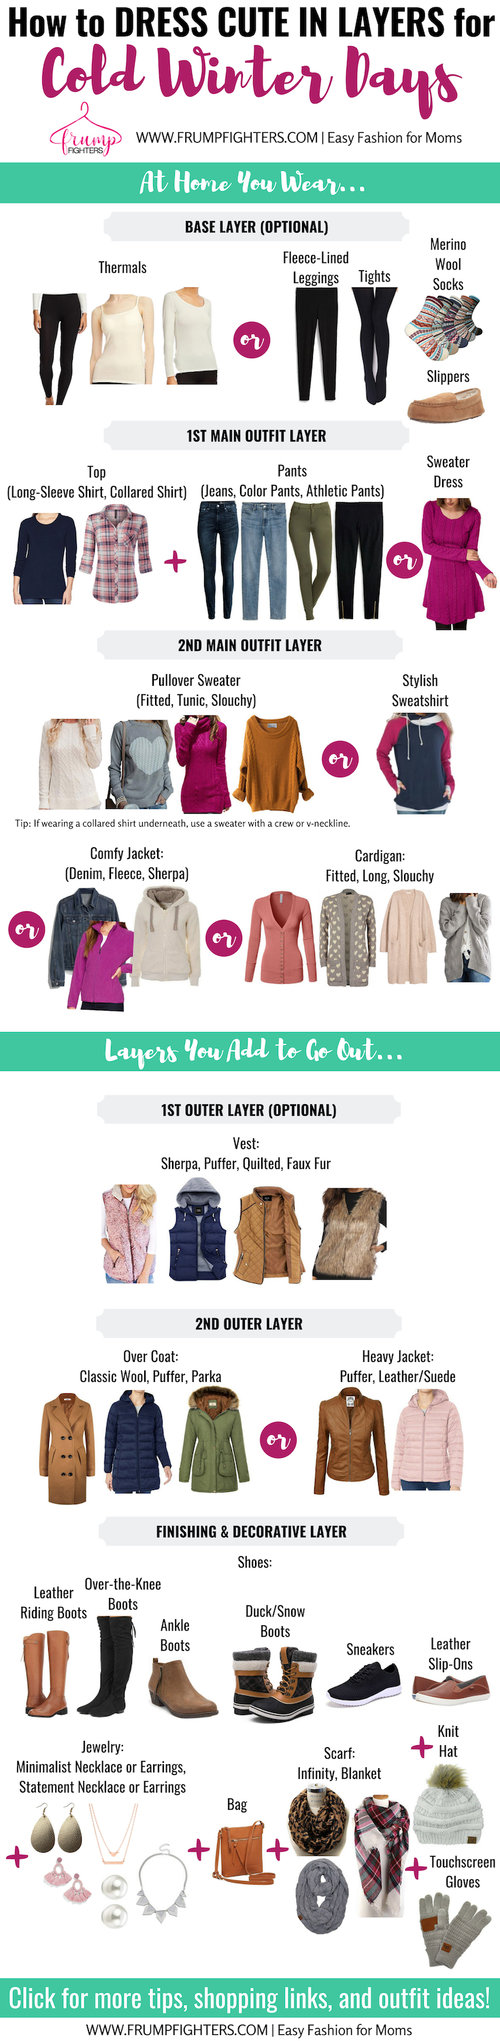 This chart is incredible! It shows you all the simple comfy ways to layer clothes for winter including sweaters, jeans, shoes, leggings, dresses. Warm winter outfits clearly don't need to be frumpy! This shows me how to layer clothes for cold weather to create cozy but cute outfits on a budget. Click through to the blog post too… it has a list of winter wardrobe essentials and outfit ideas with pictures! #winteroutfits #howtowear #cozy #momstyle